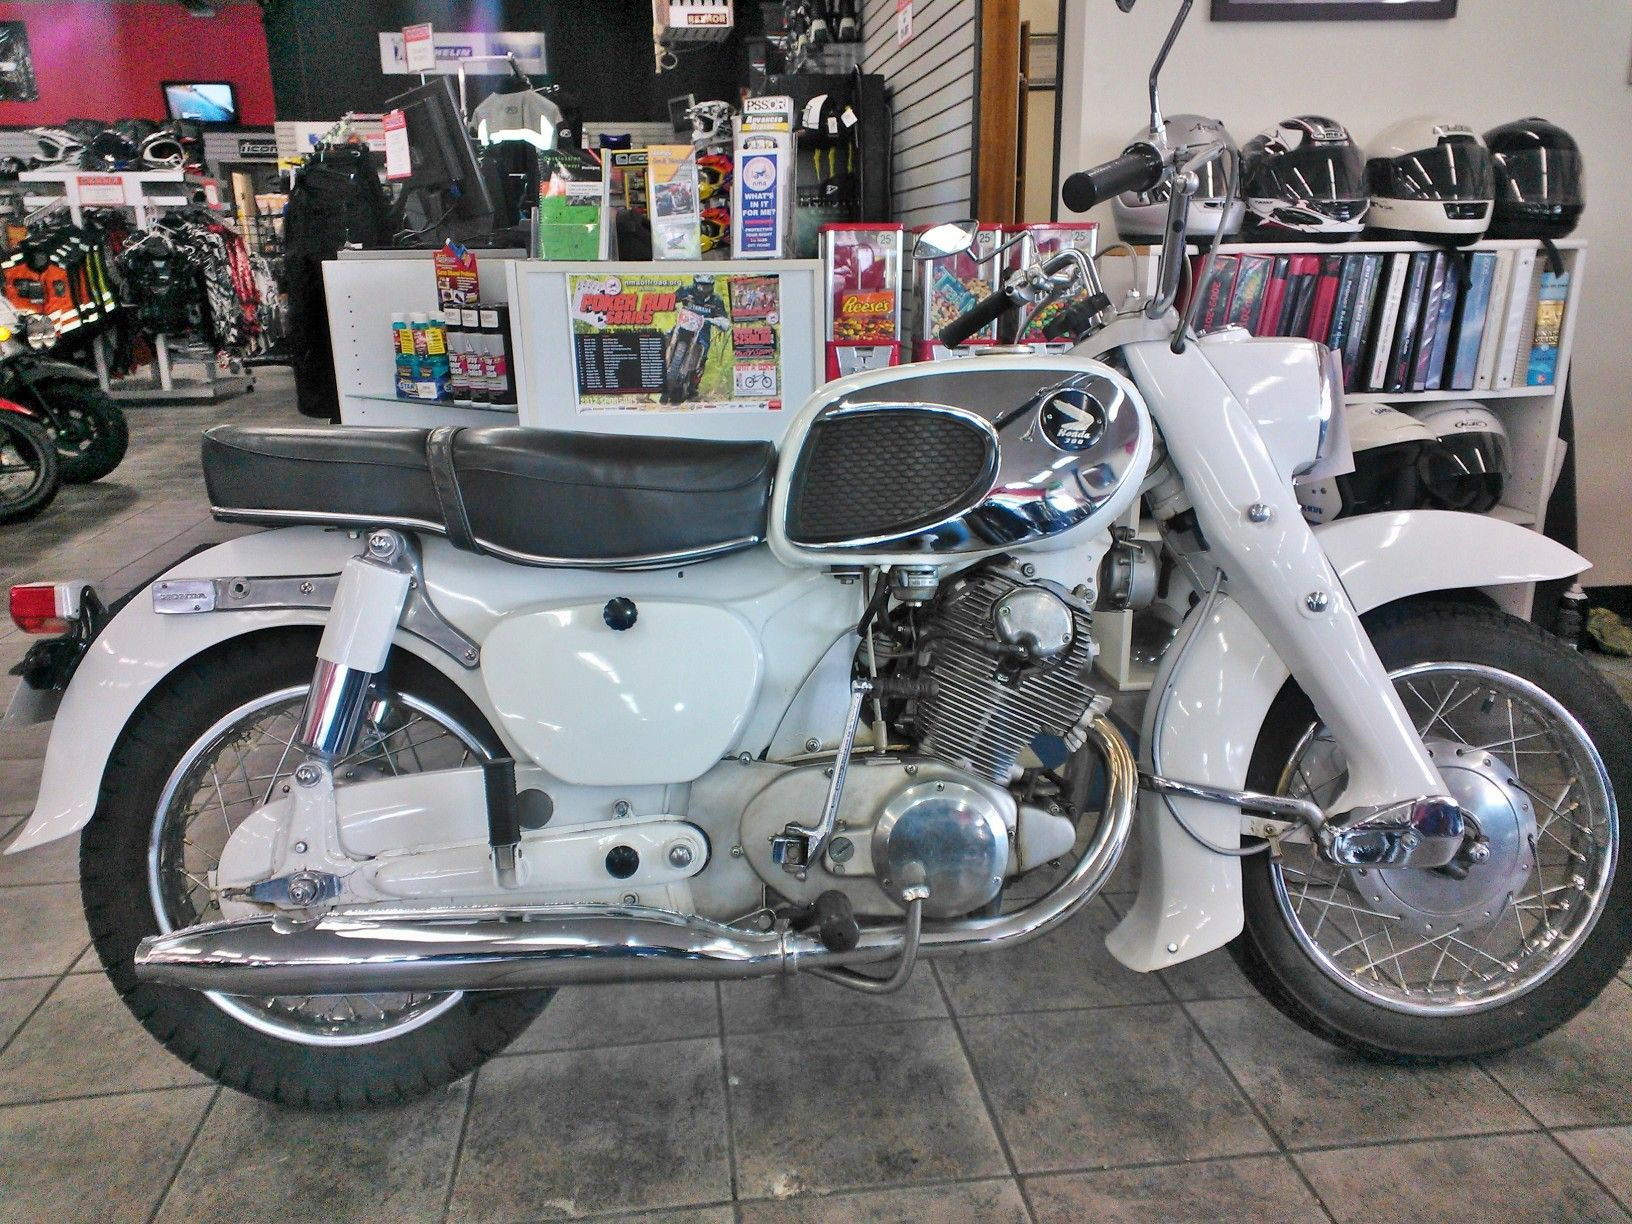 what a great vintage motorcycle: a 1967 honda 305cc dream. show